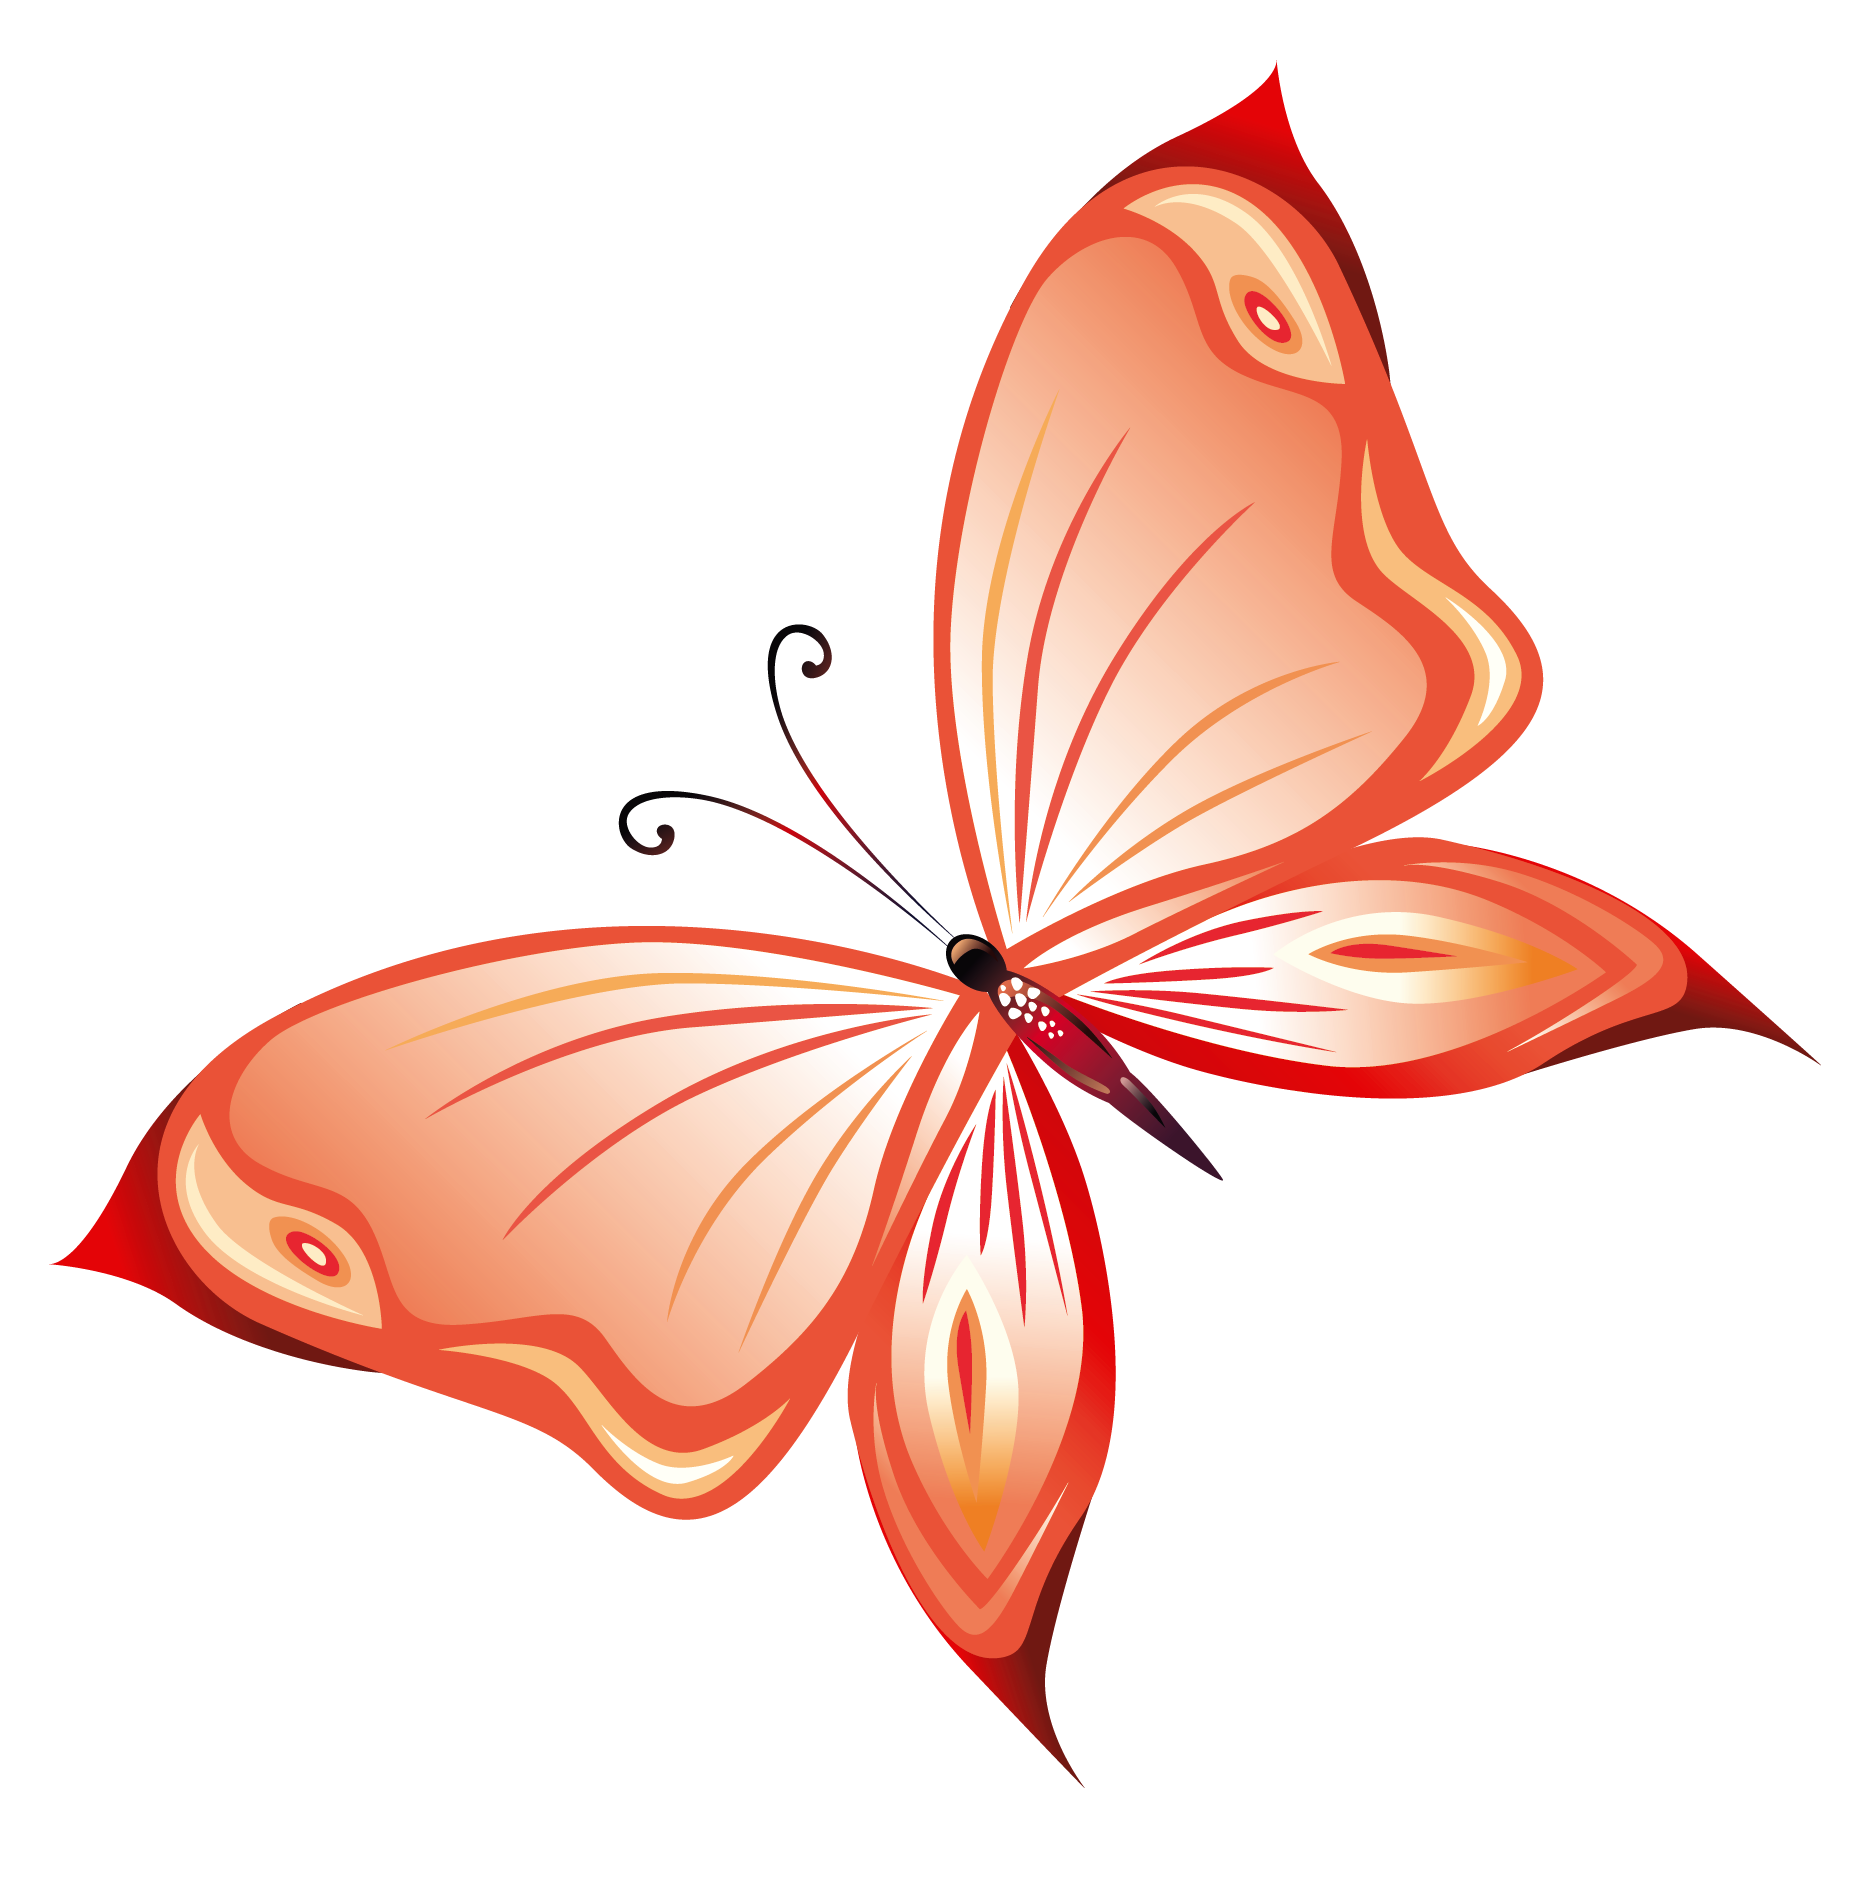 Butterfly Transparent Clipart